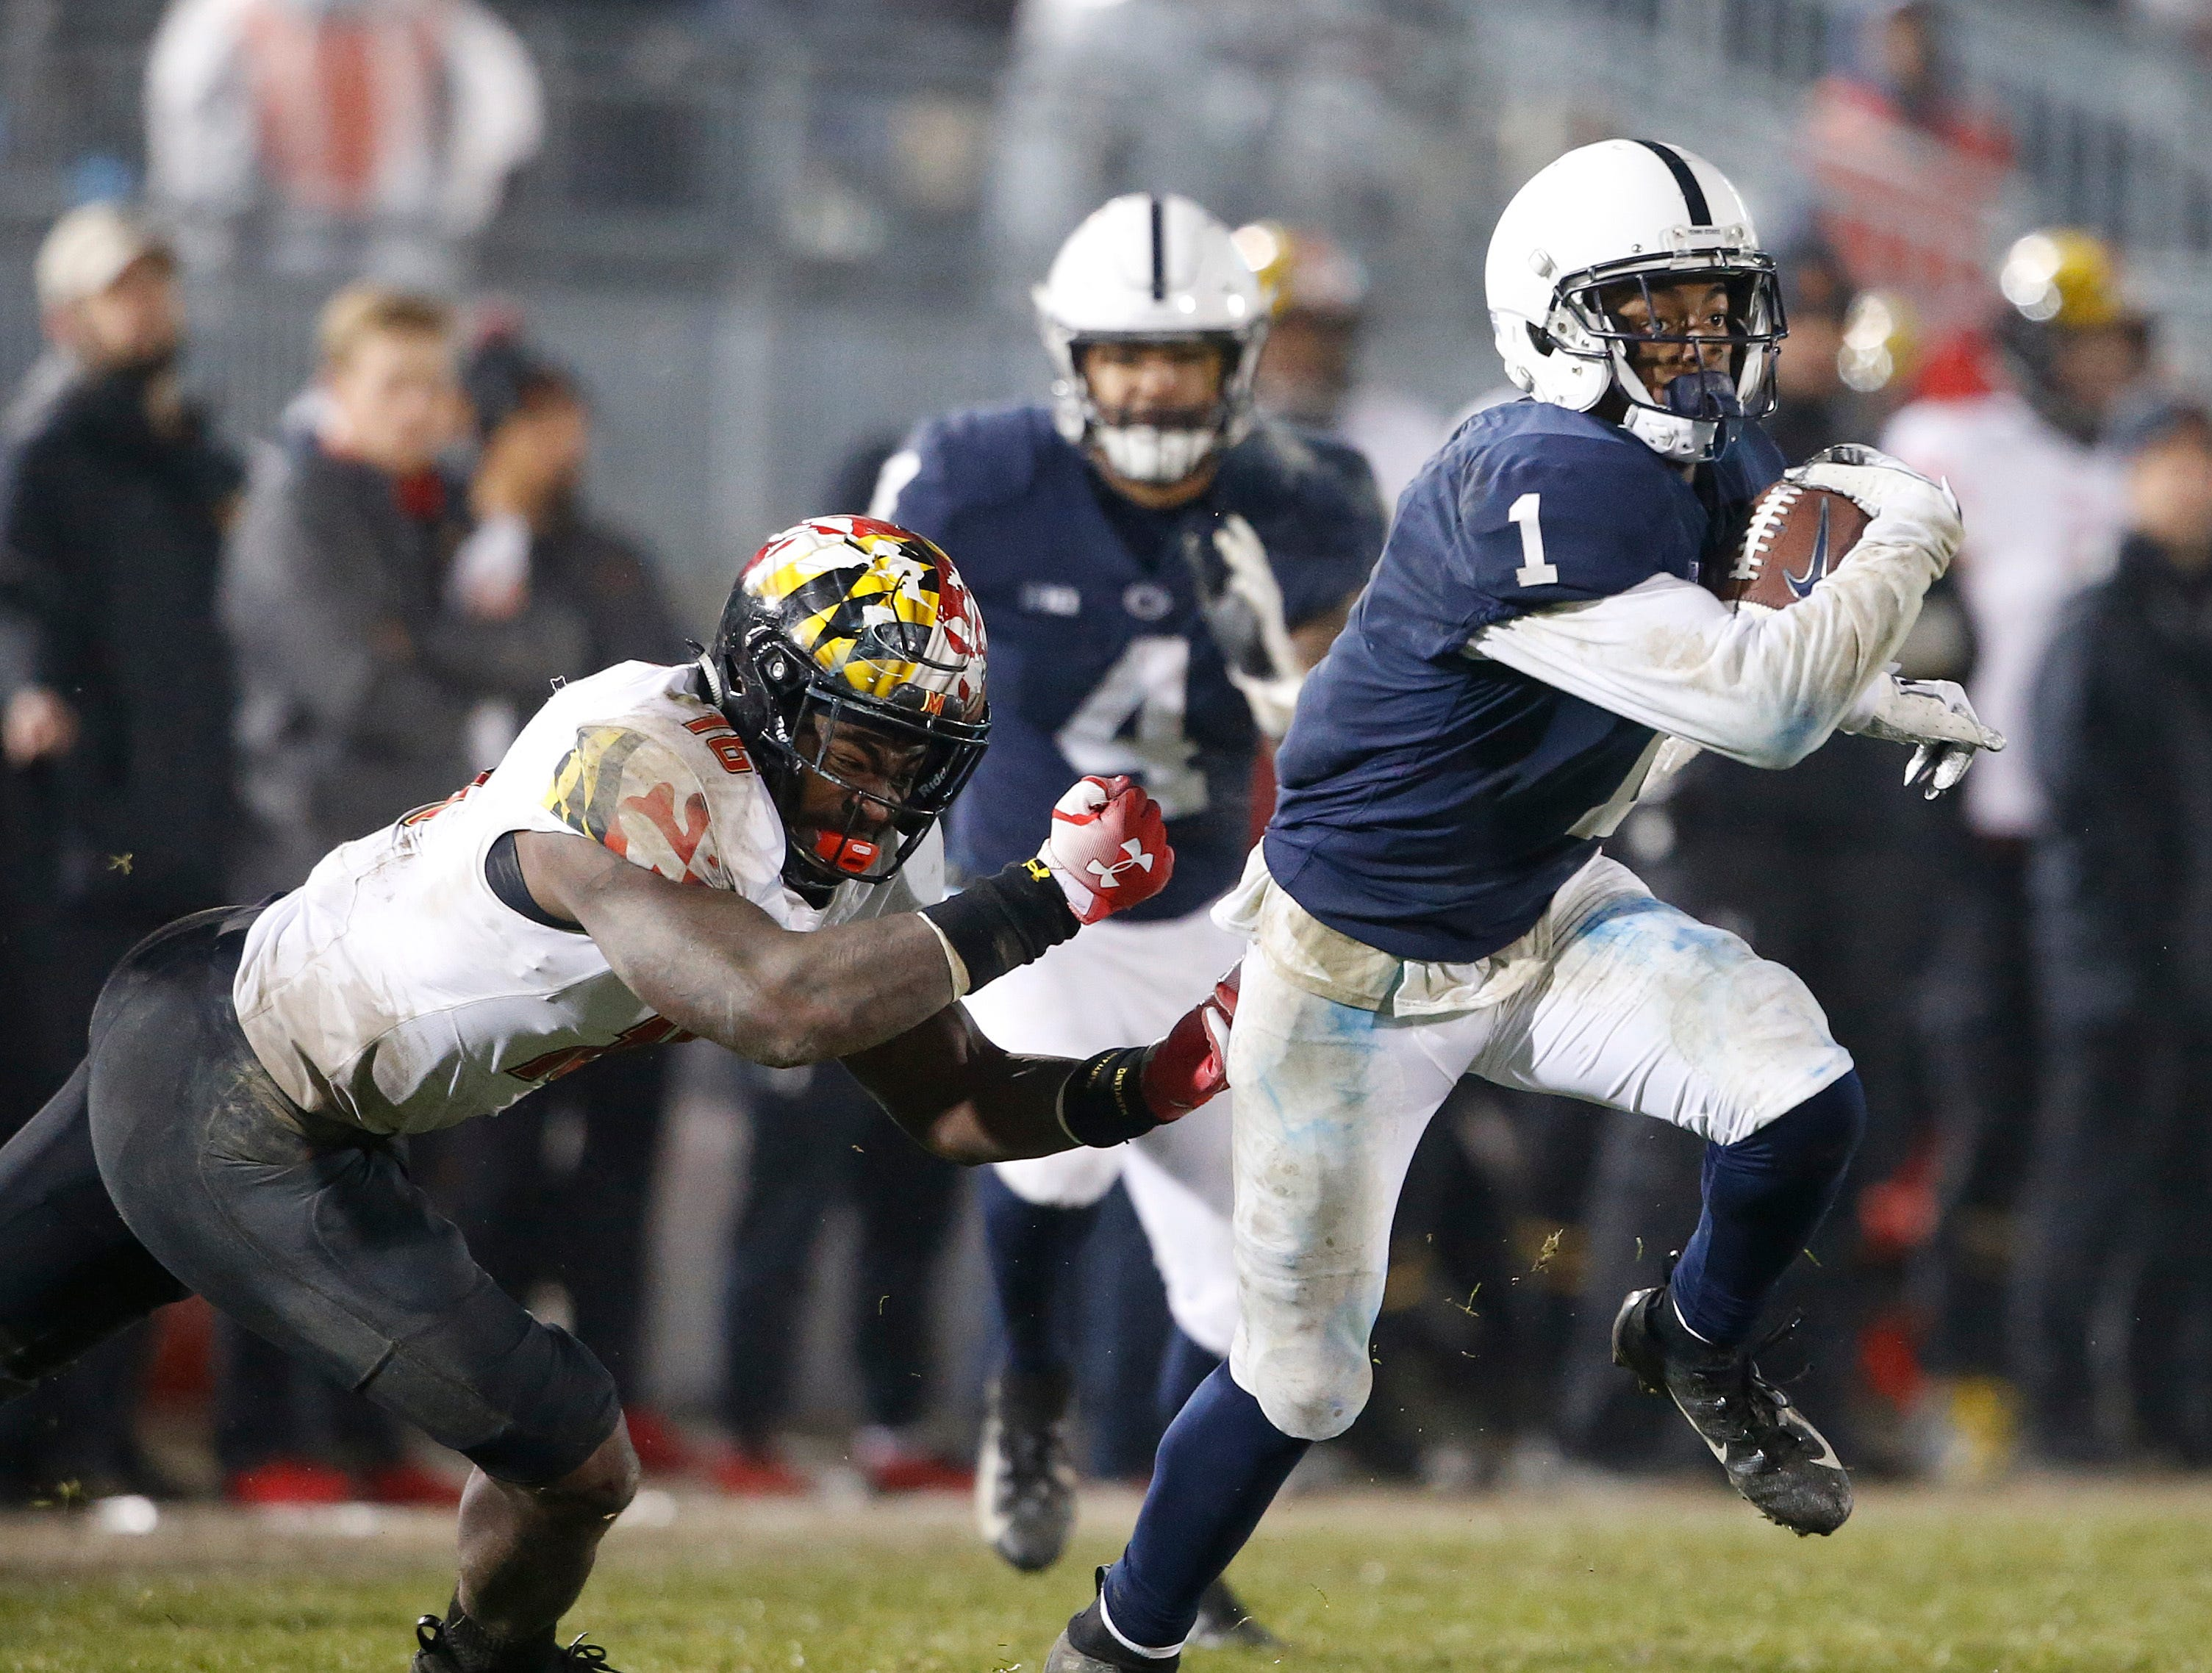 4. Penn State (9-3, 6-3) – Much like last season, the Nittany Lions lost their shot at a championship weeks ago with losses to Ohio State and Michigan State. And despite squeaking by a few times, they've taken care of business and blew out Maryland in the regular-season finale. It might be good enough to get the Nittany Lions in a New Year's Six bowl game. Last week: 4.